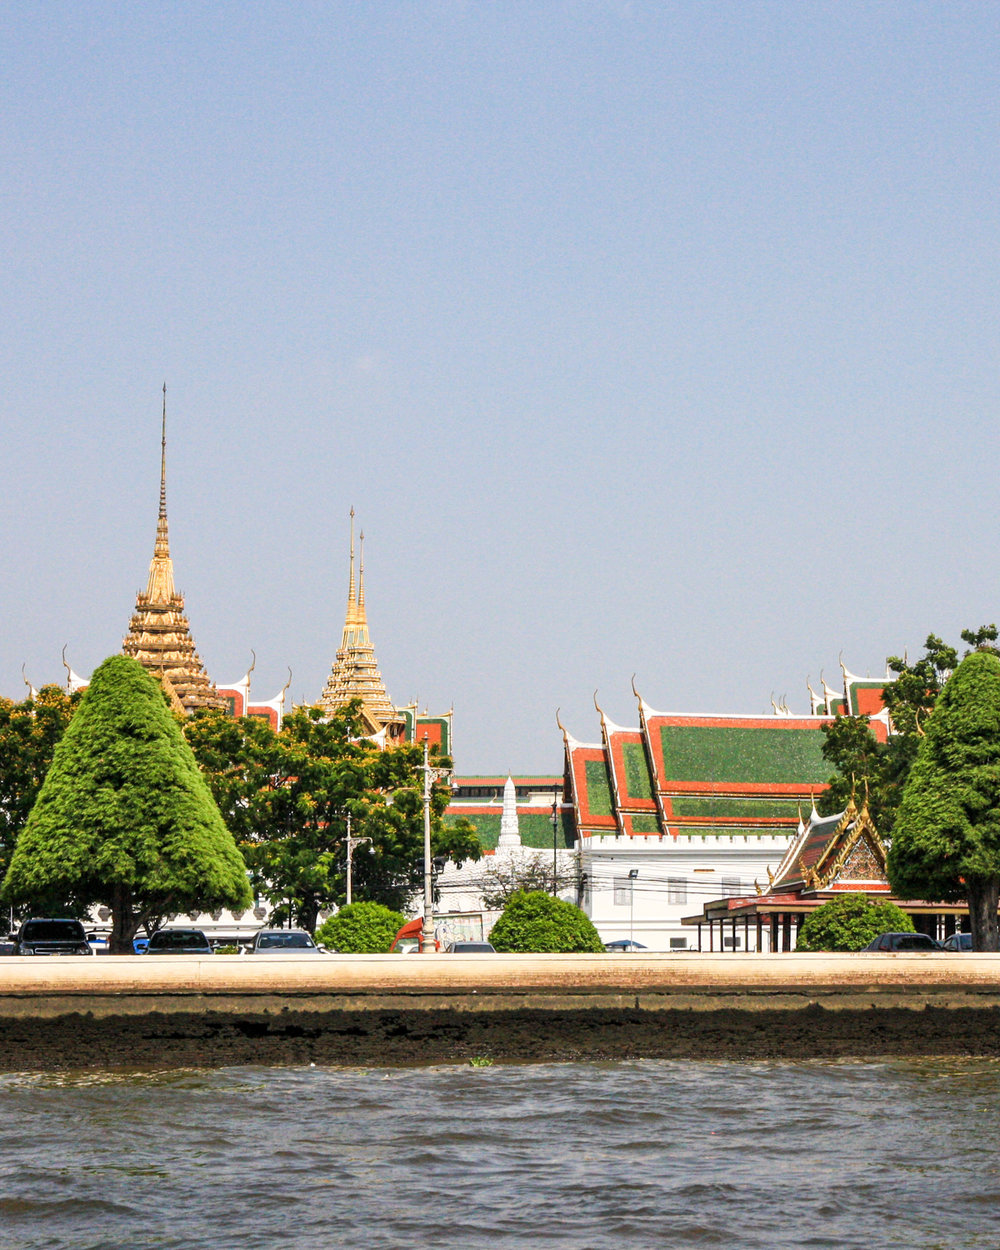 The river in Bangkok